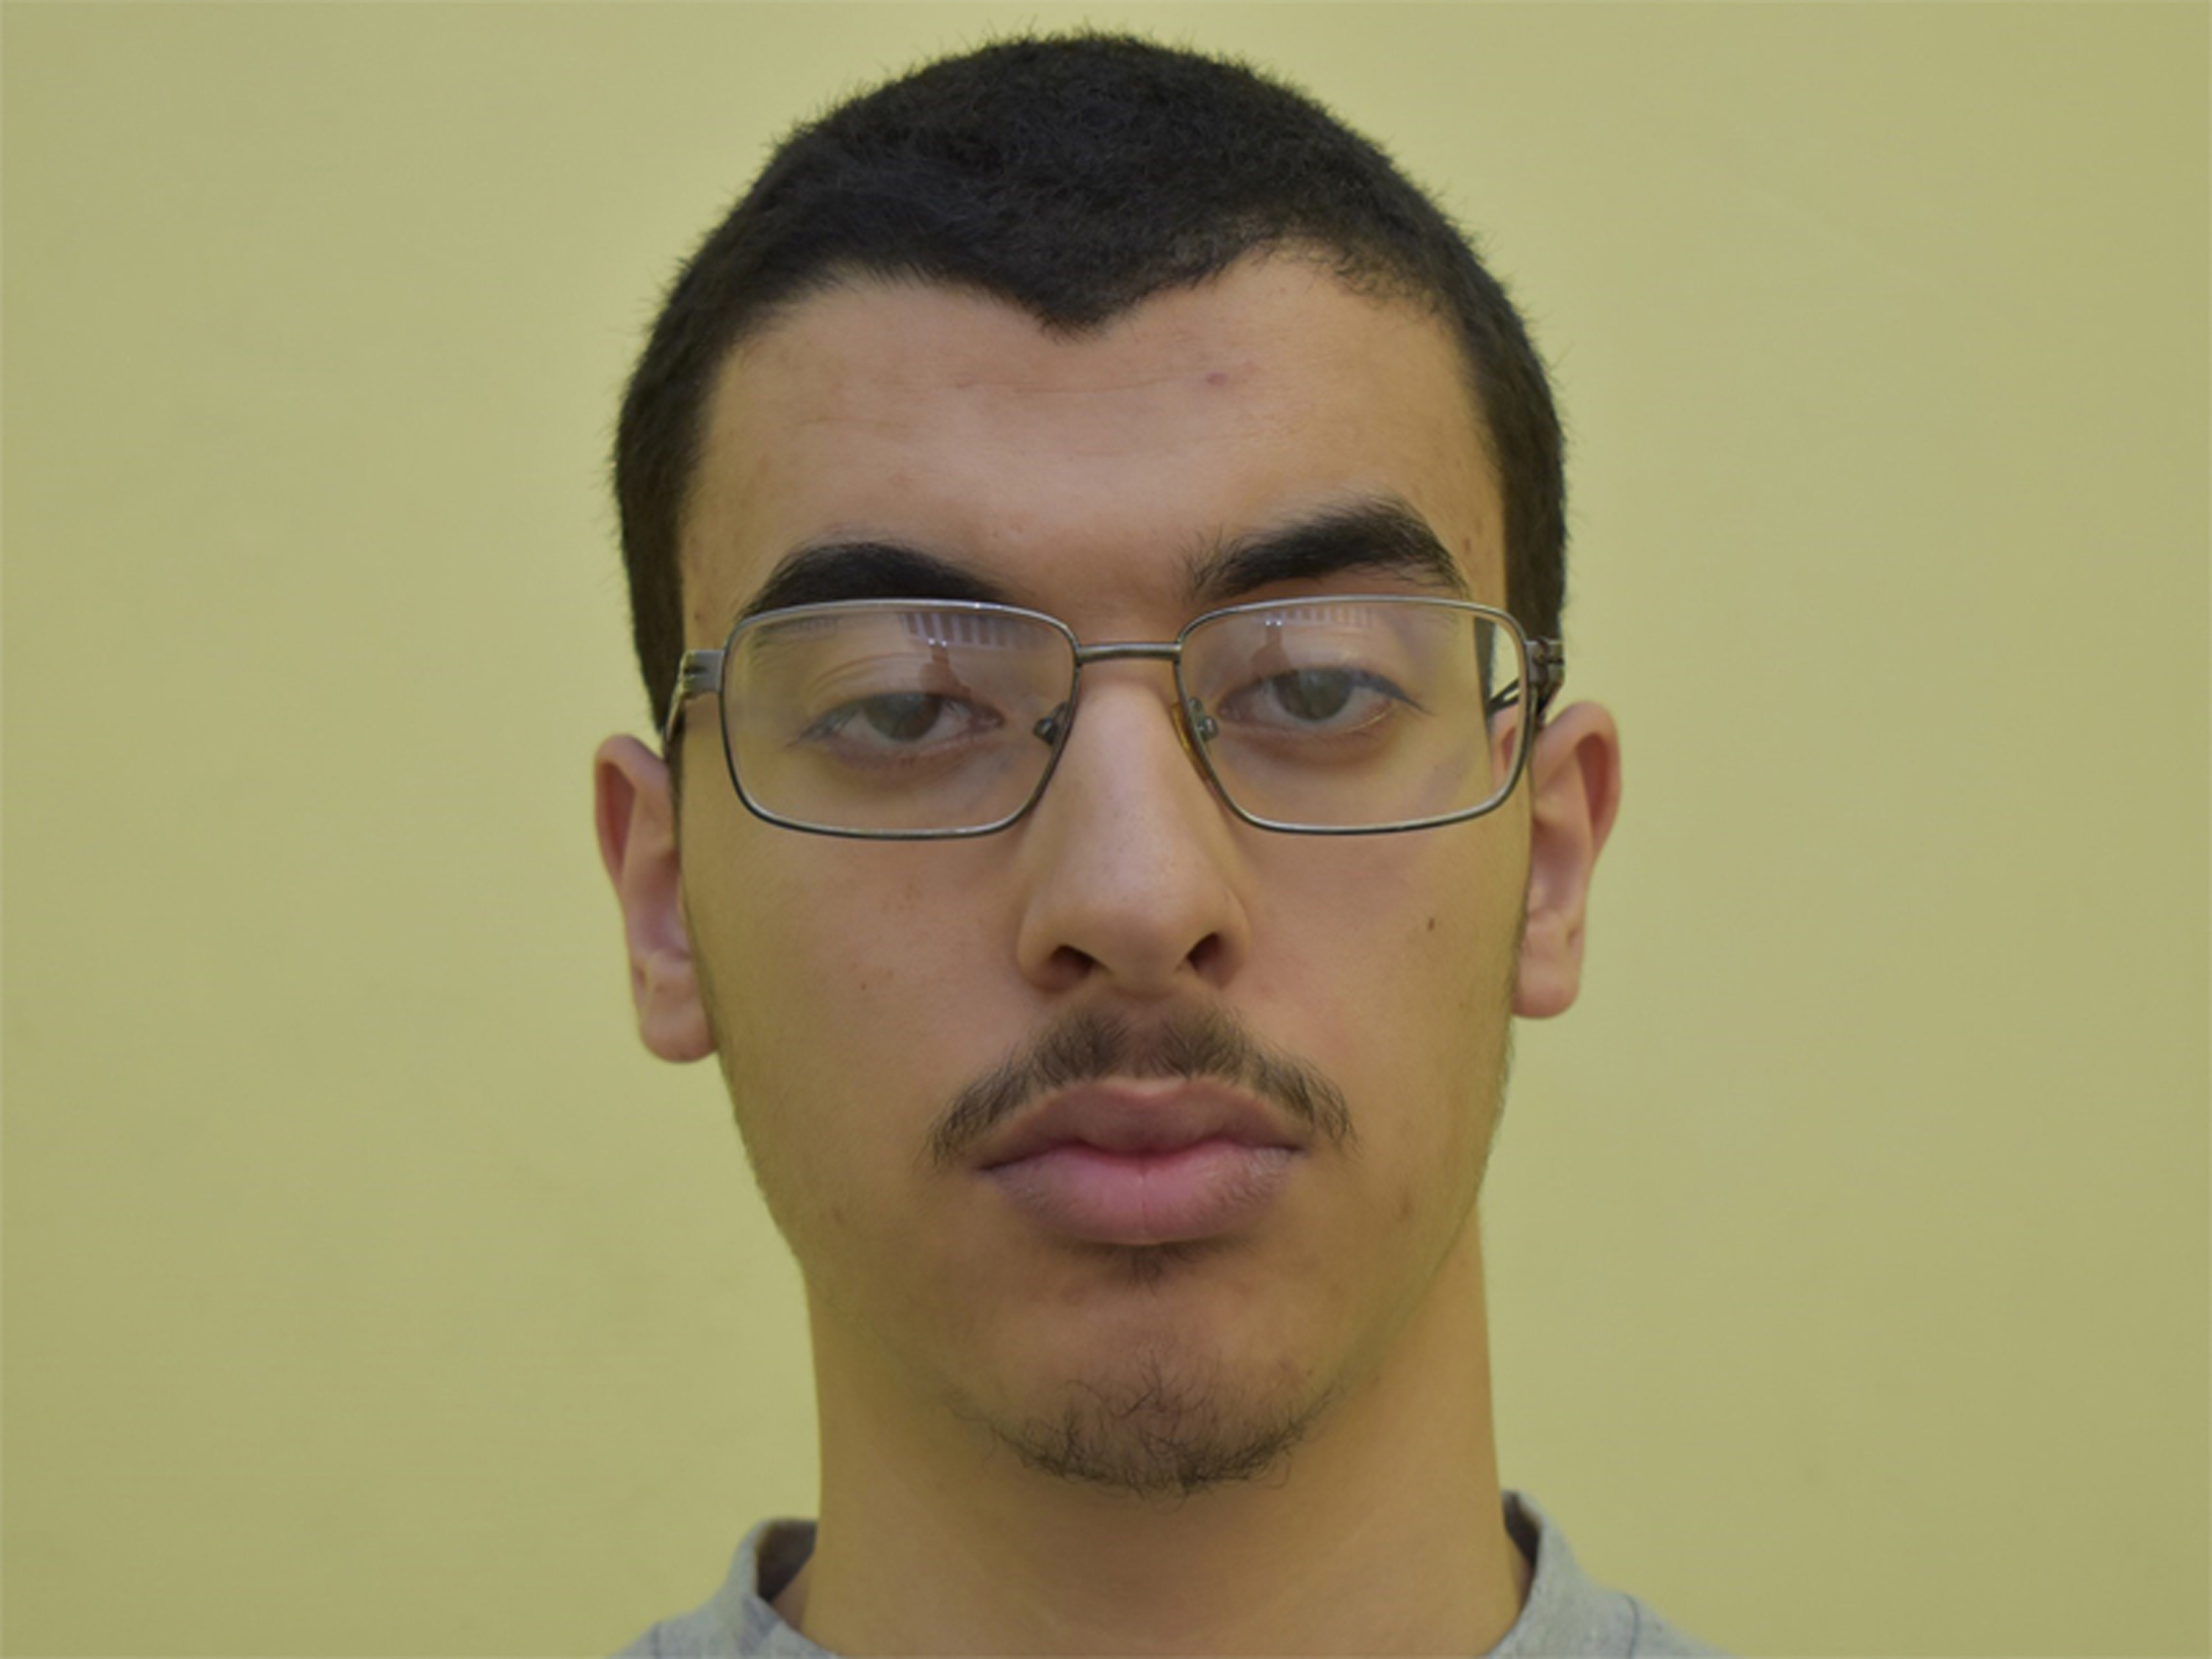 Manchester bomber's brother sentenced to 55 years